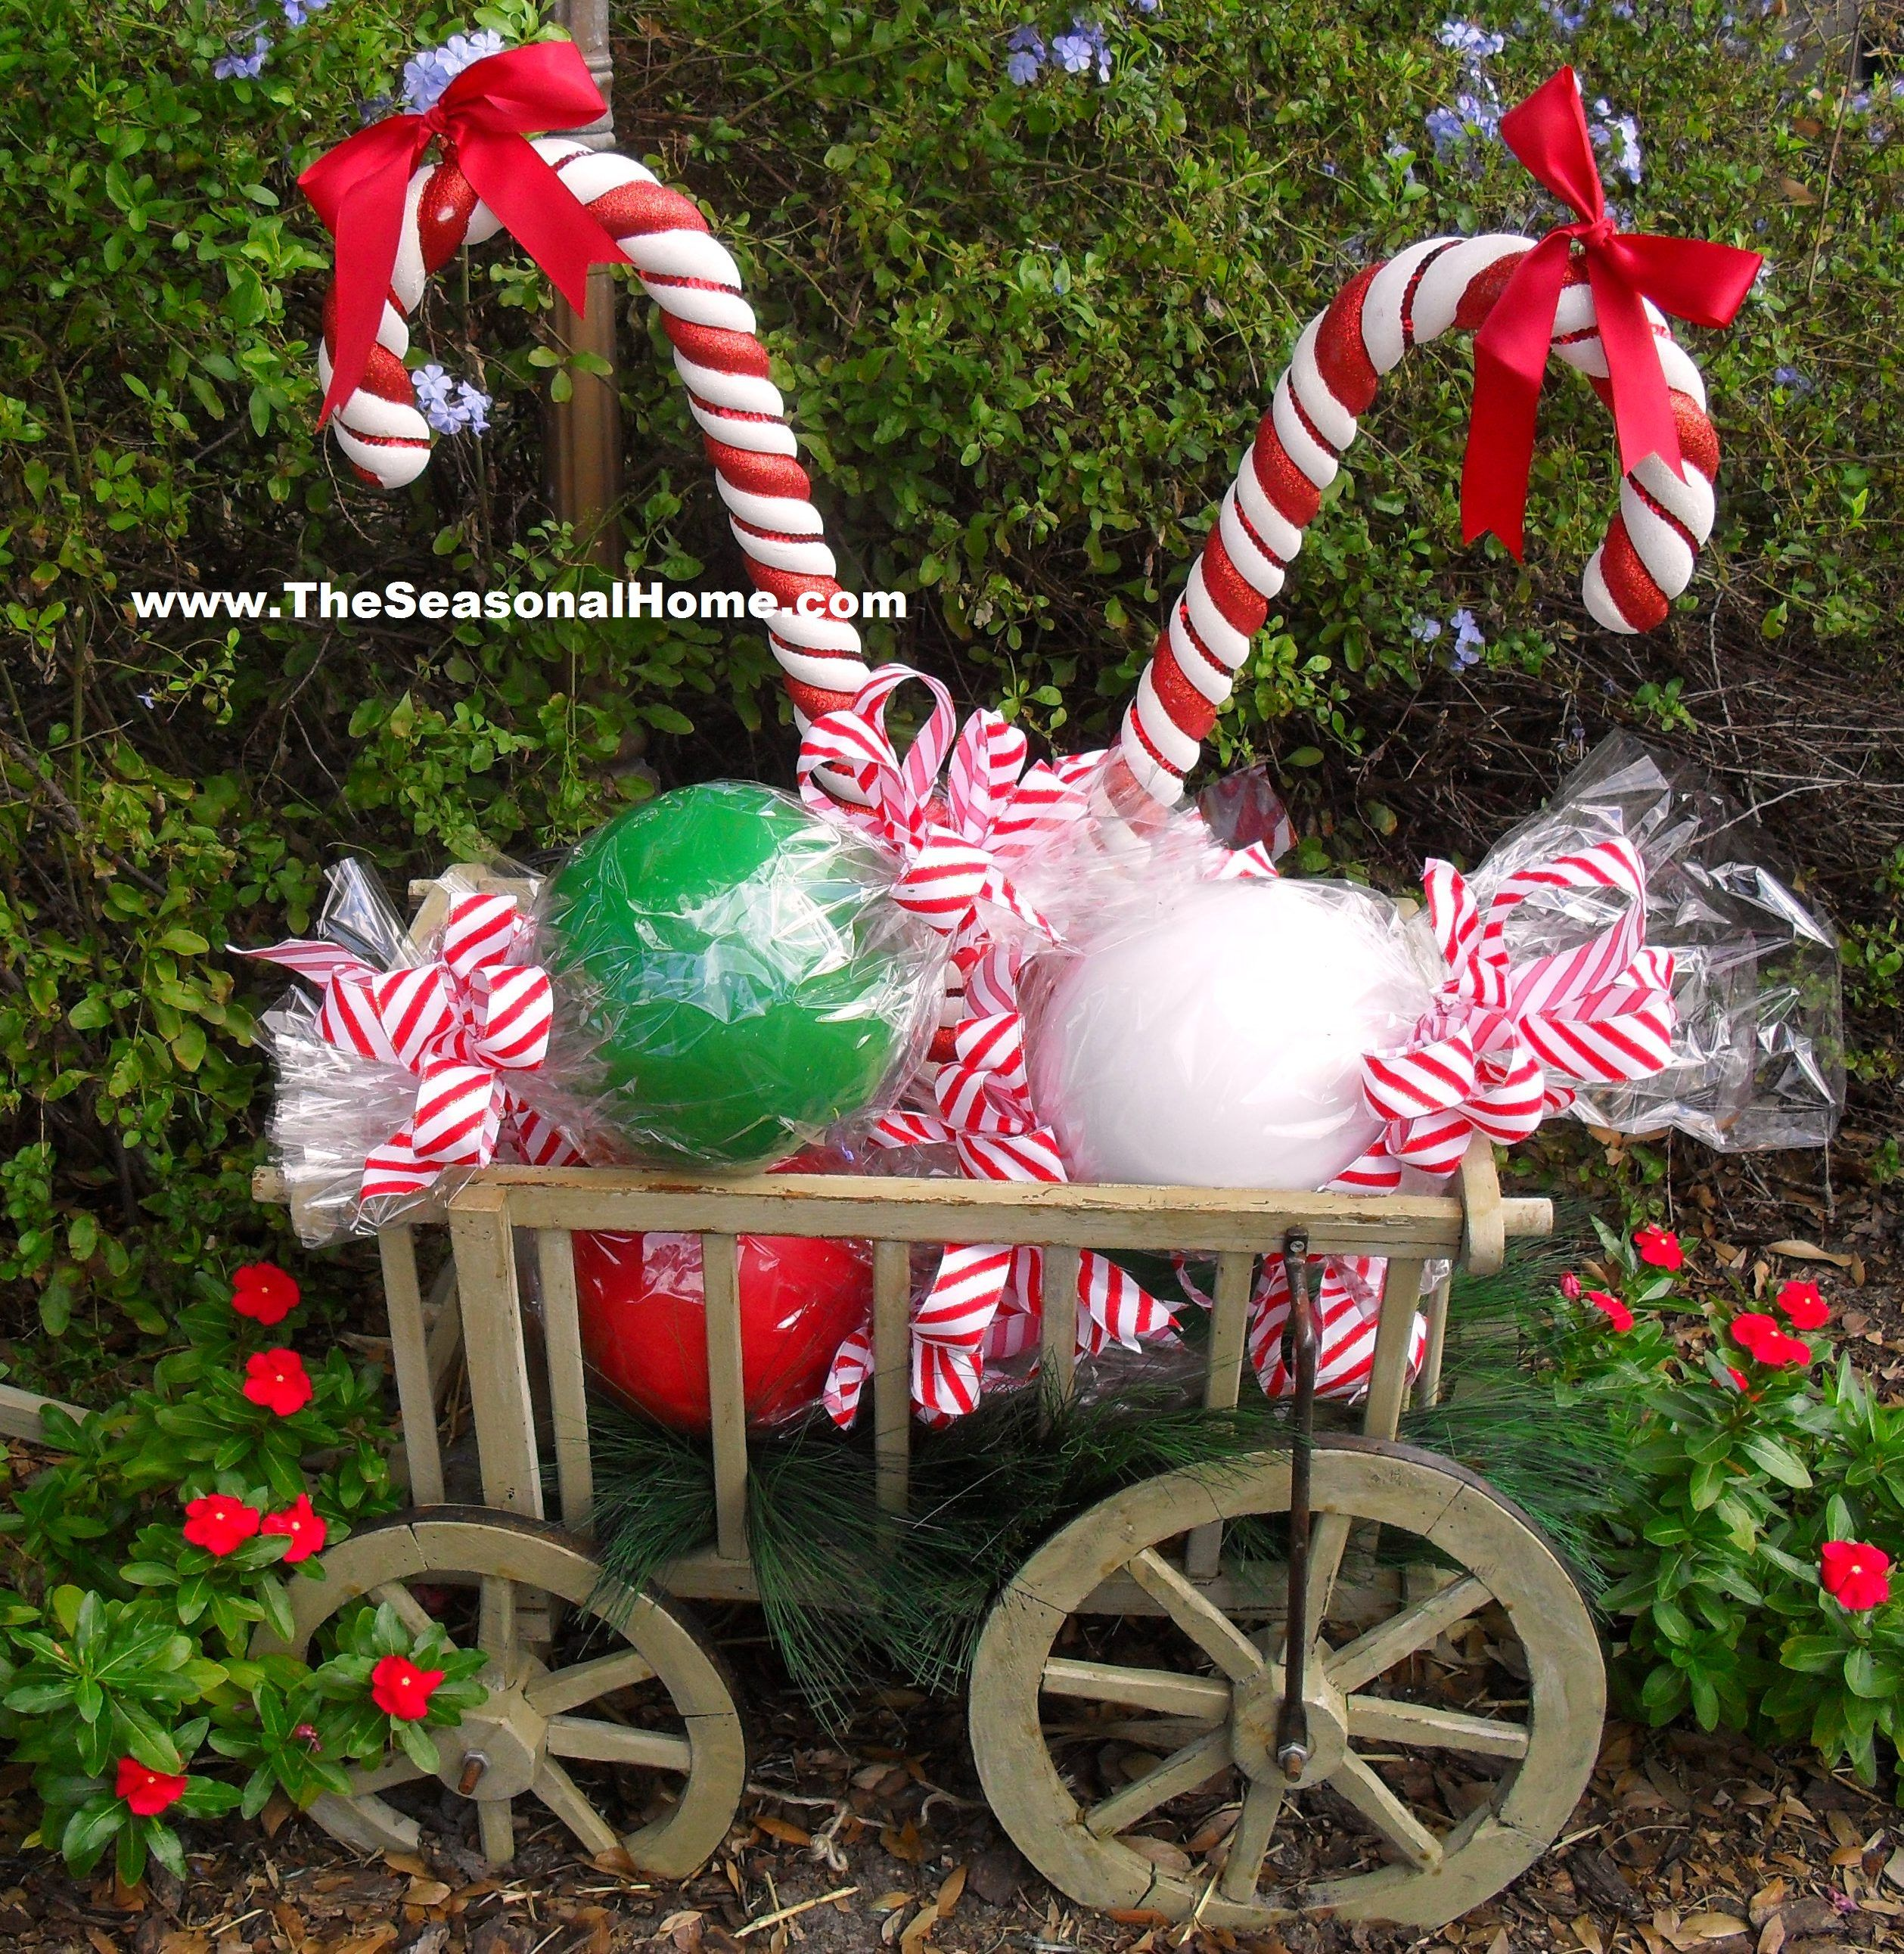 How to diy outdoor candy on the seasonal home blog for Holiday lawn decorations